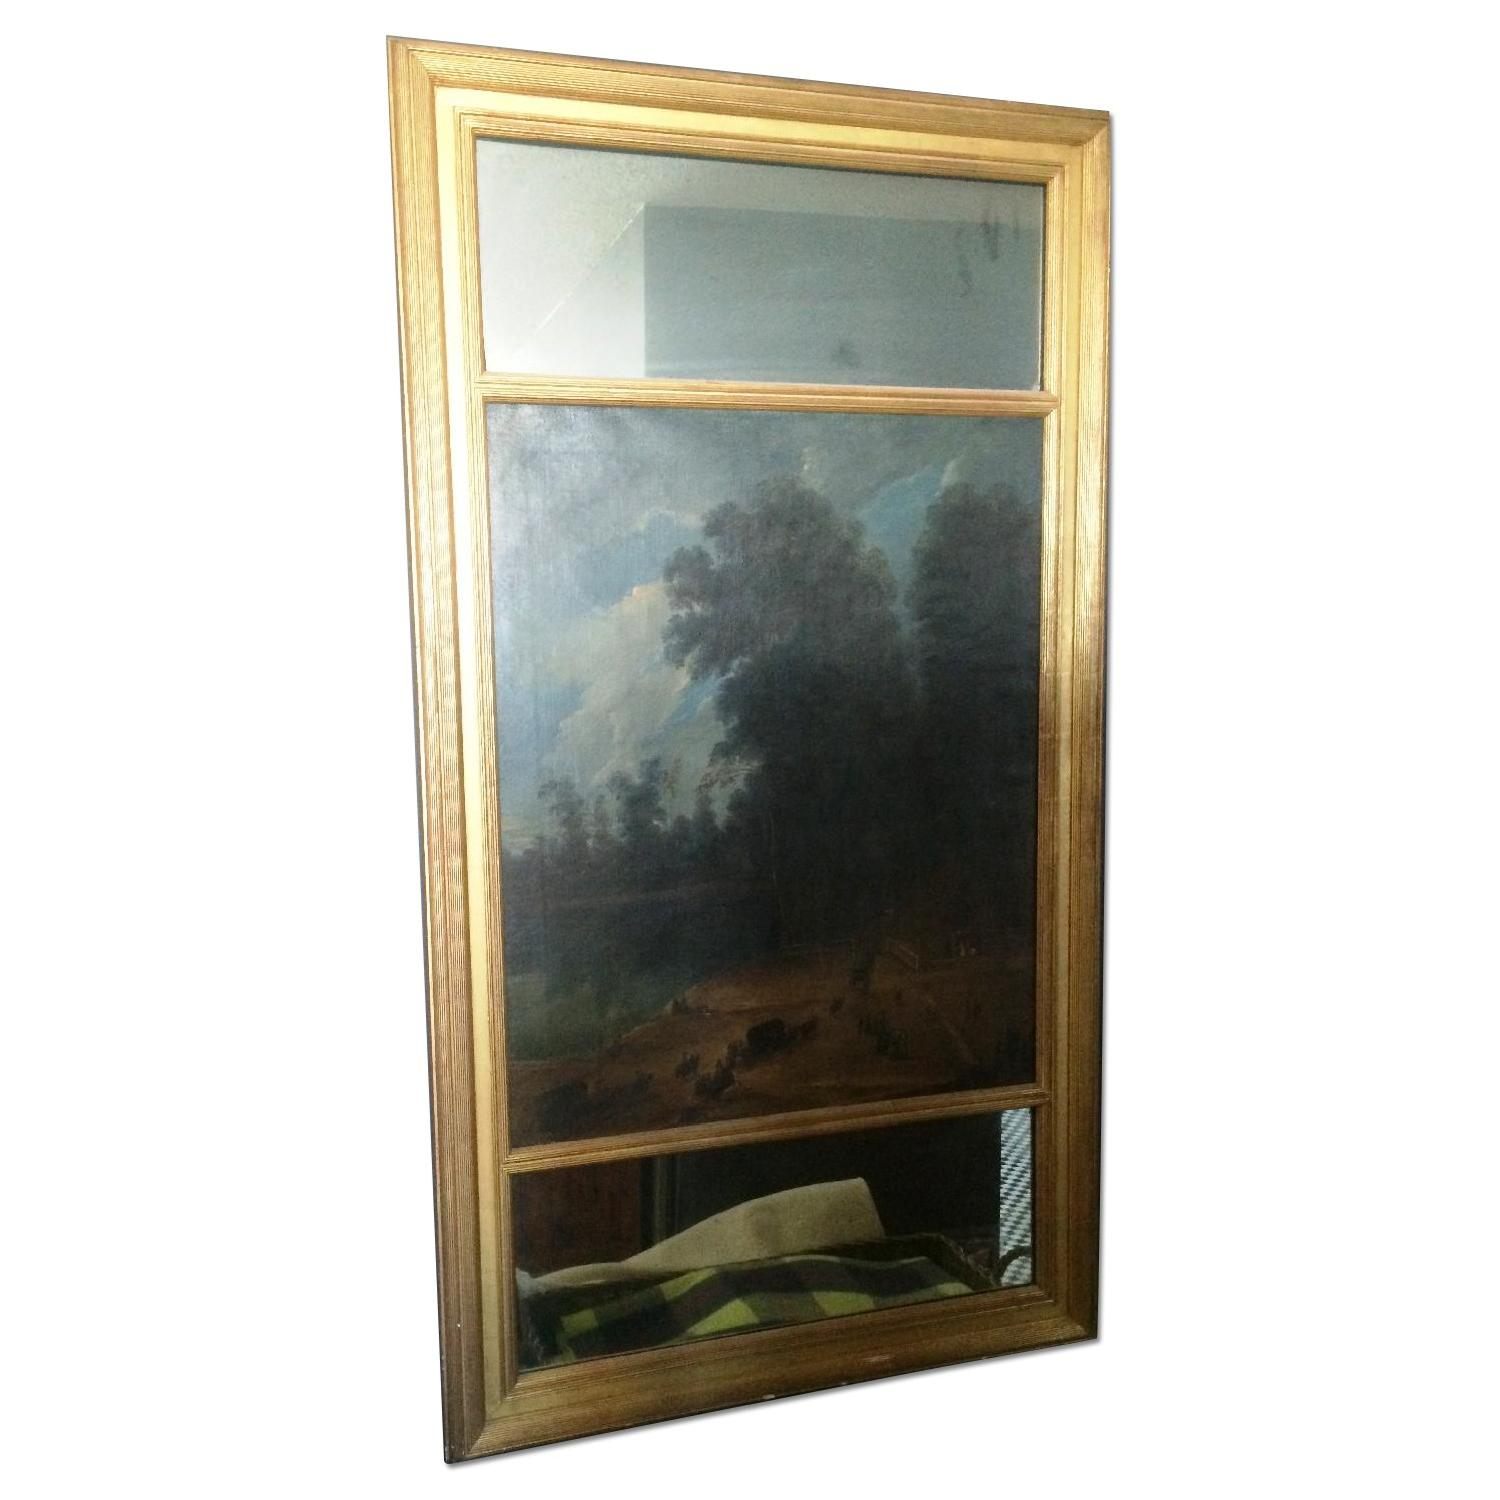 Antique Trumeau 19th Century Gold Mirror with Landscape